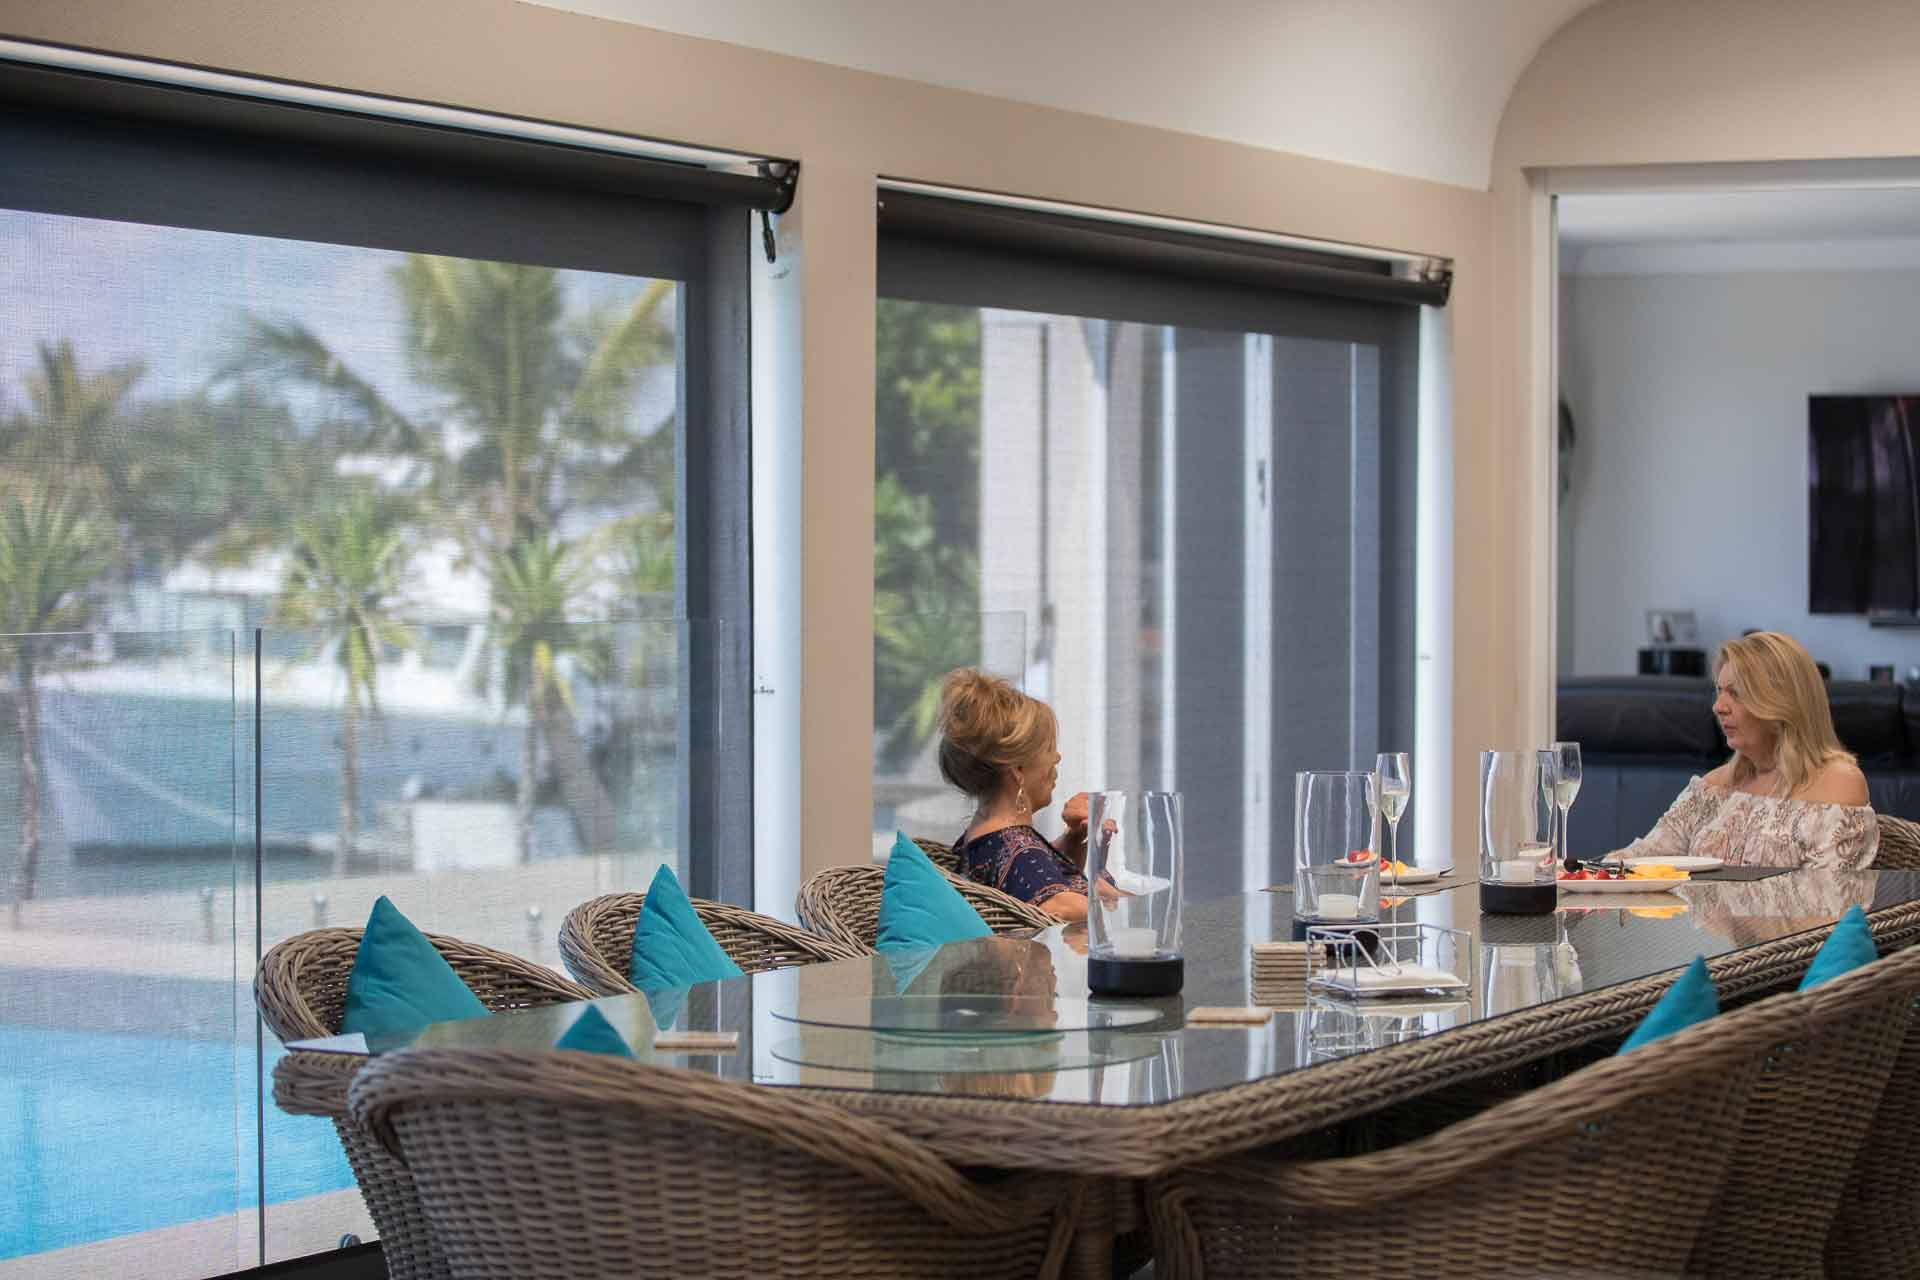 Protect your outdoor furniture from damage with shade blinds - Protect your outdoor furniture with a set of outdoor shade blinds, Australian Outdoor Living.